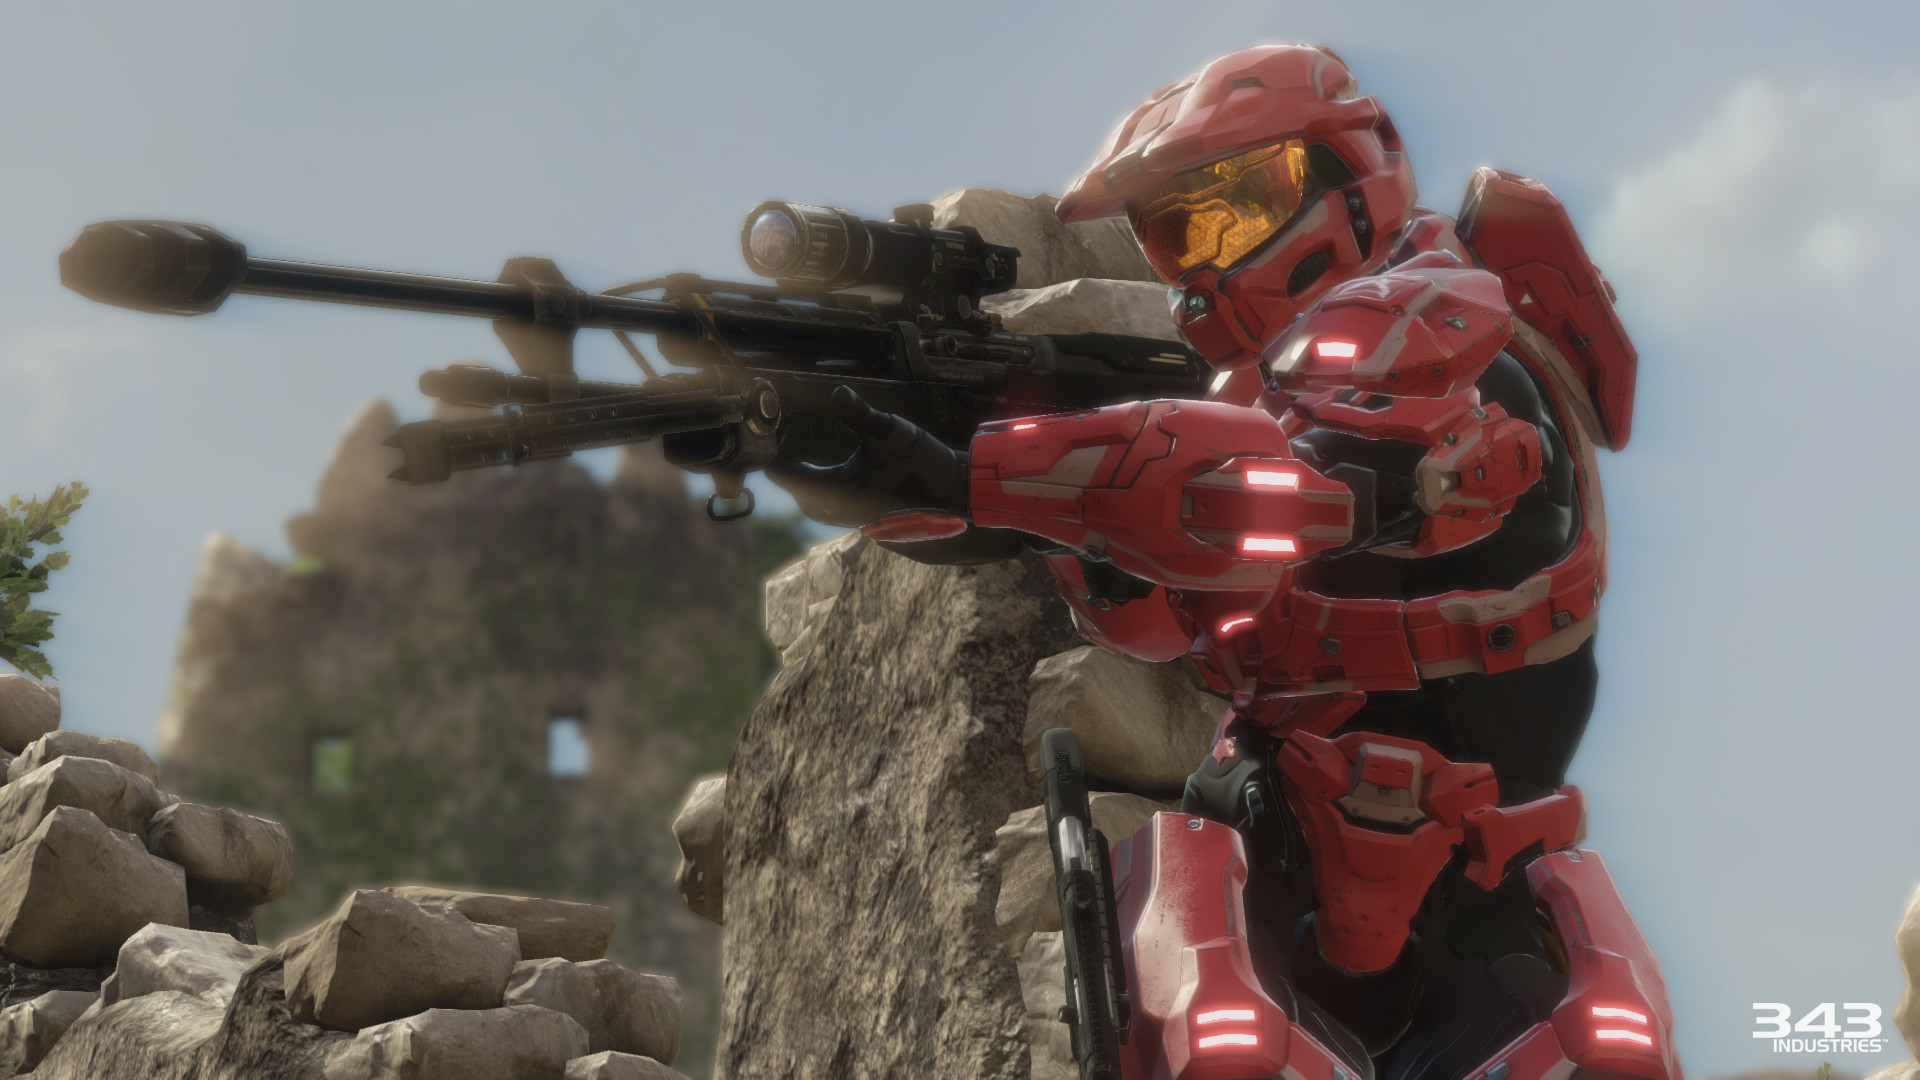 Halo: The Master Chief Collection Review: Remastered Chief